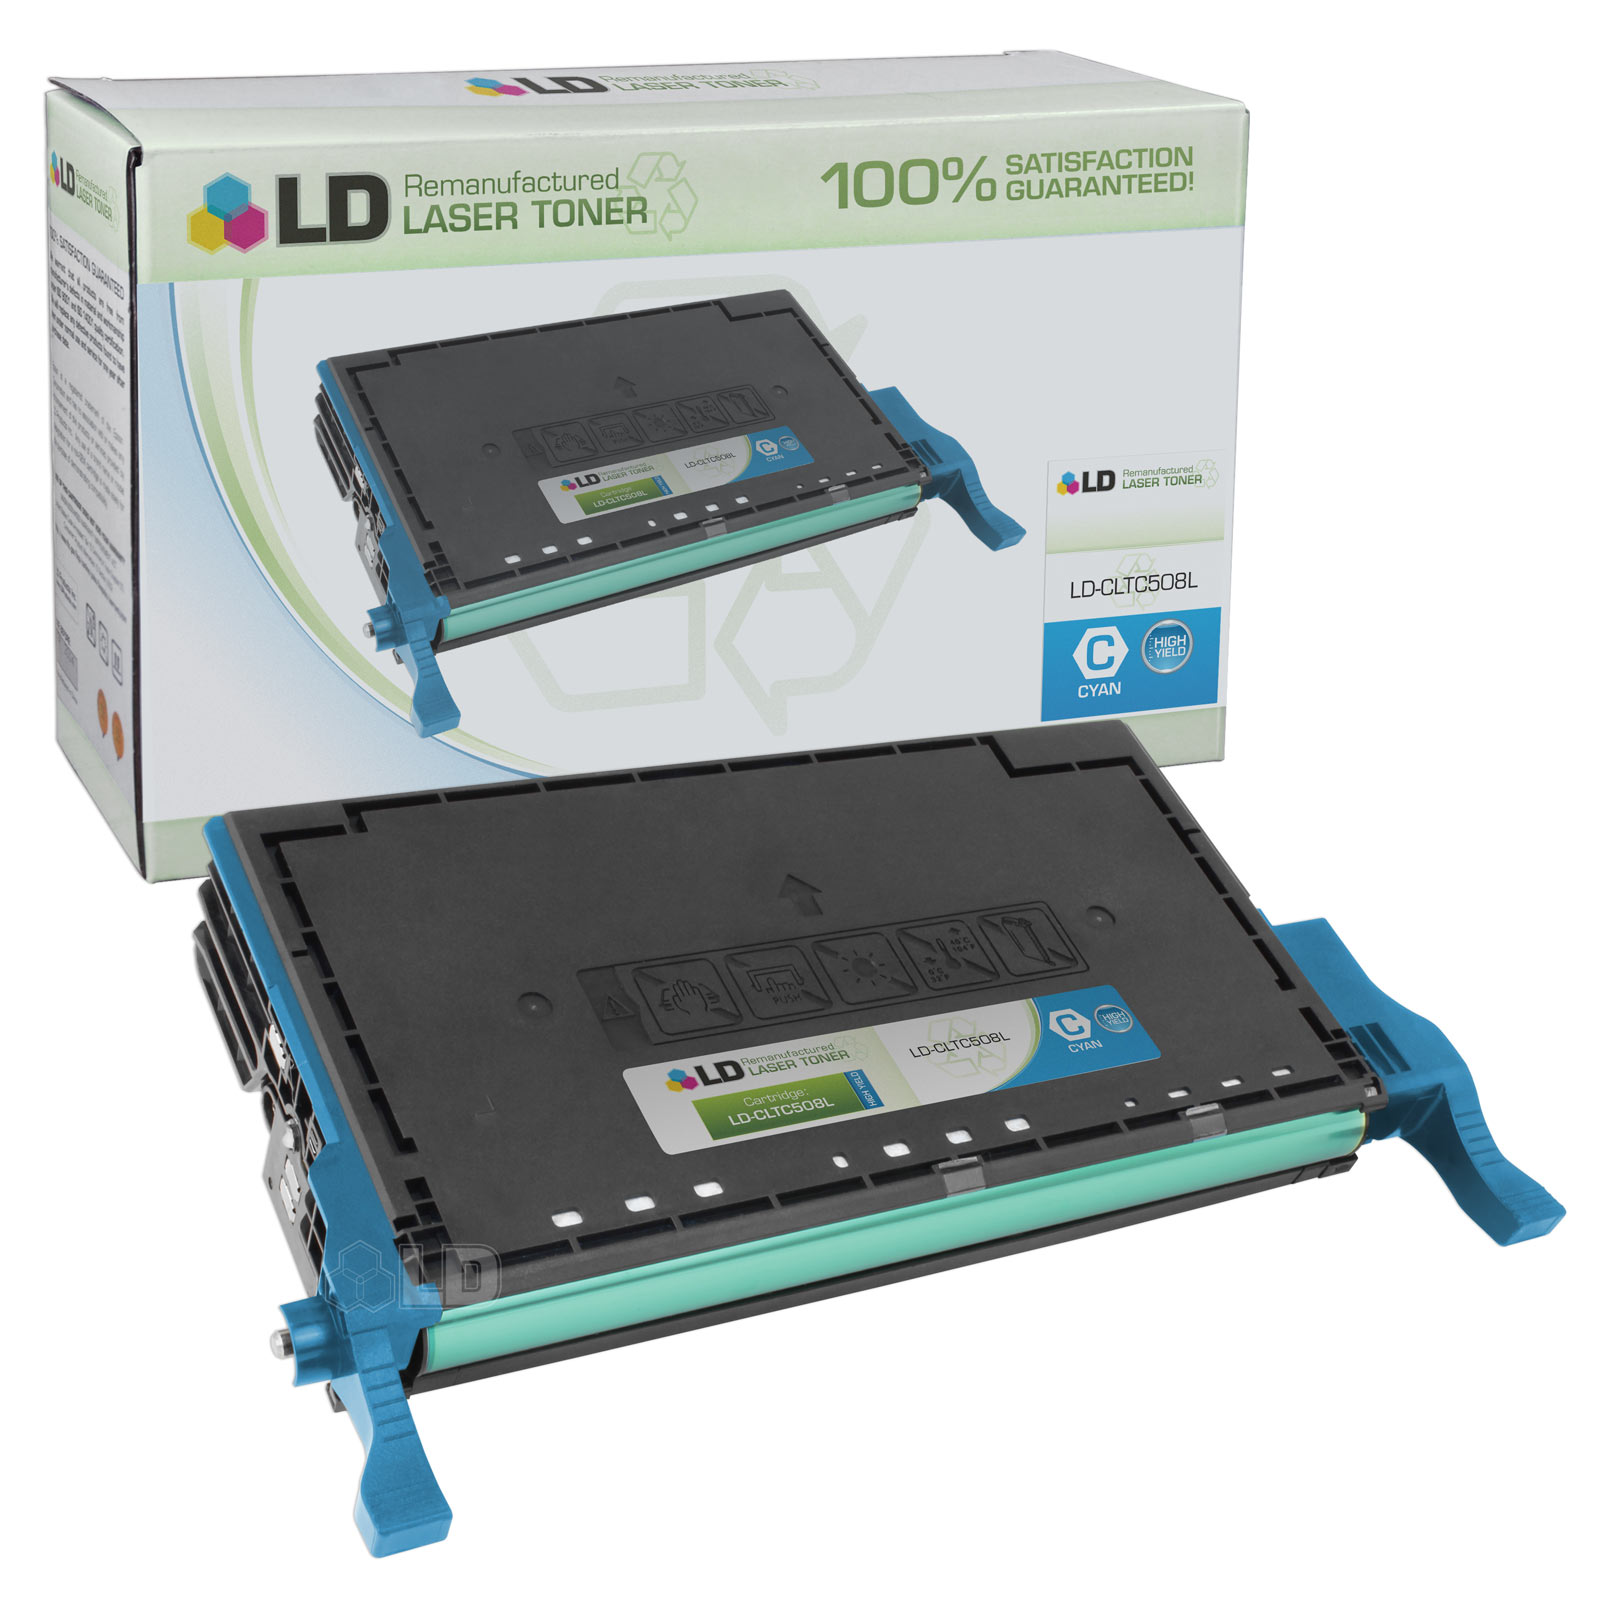 LD Replacement CLT-C508L High Yield Cyan Laser Toner Cartridge for use in the CLP-620ND, CLP-670N, CLP-670ND, CLX-6220FX